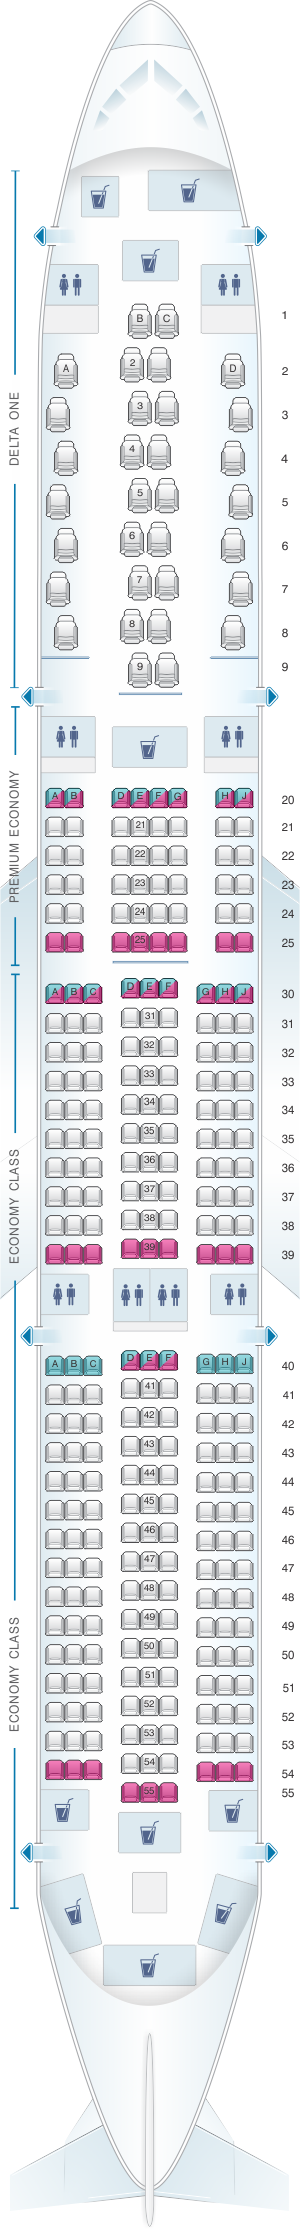 Seat map for Delta Air Lines Airbus A350 900